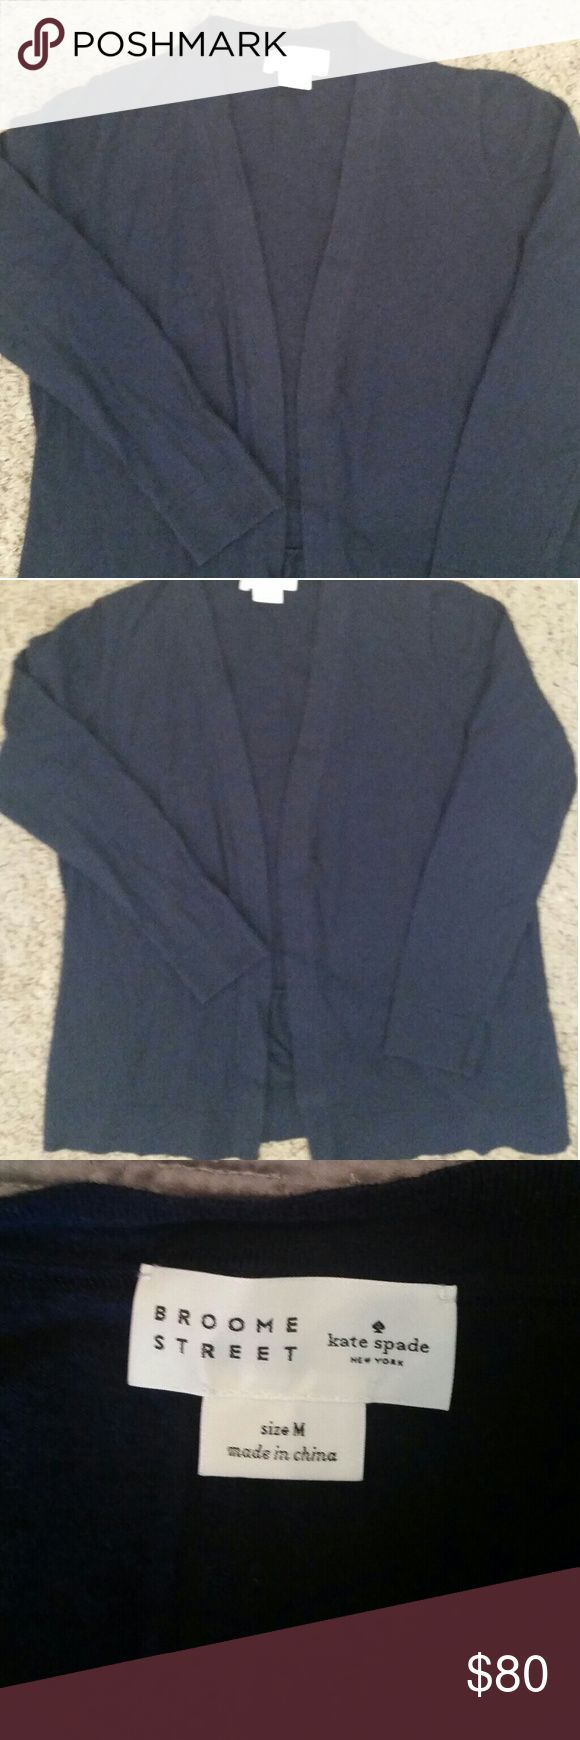 Kate Spade Open Cardigan Sweater Kate Spade New York Broome Street Open Cardigan Sweater. No buttons. Size Medium. Navy blue. Ruffle on the back bottom. Cotton-cashmere blend. Bought brand new from Trunk Club. Worn a handful of times. Still in good condition. kate spade Sweaters Cardigans